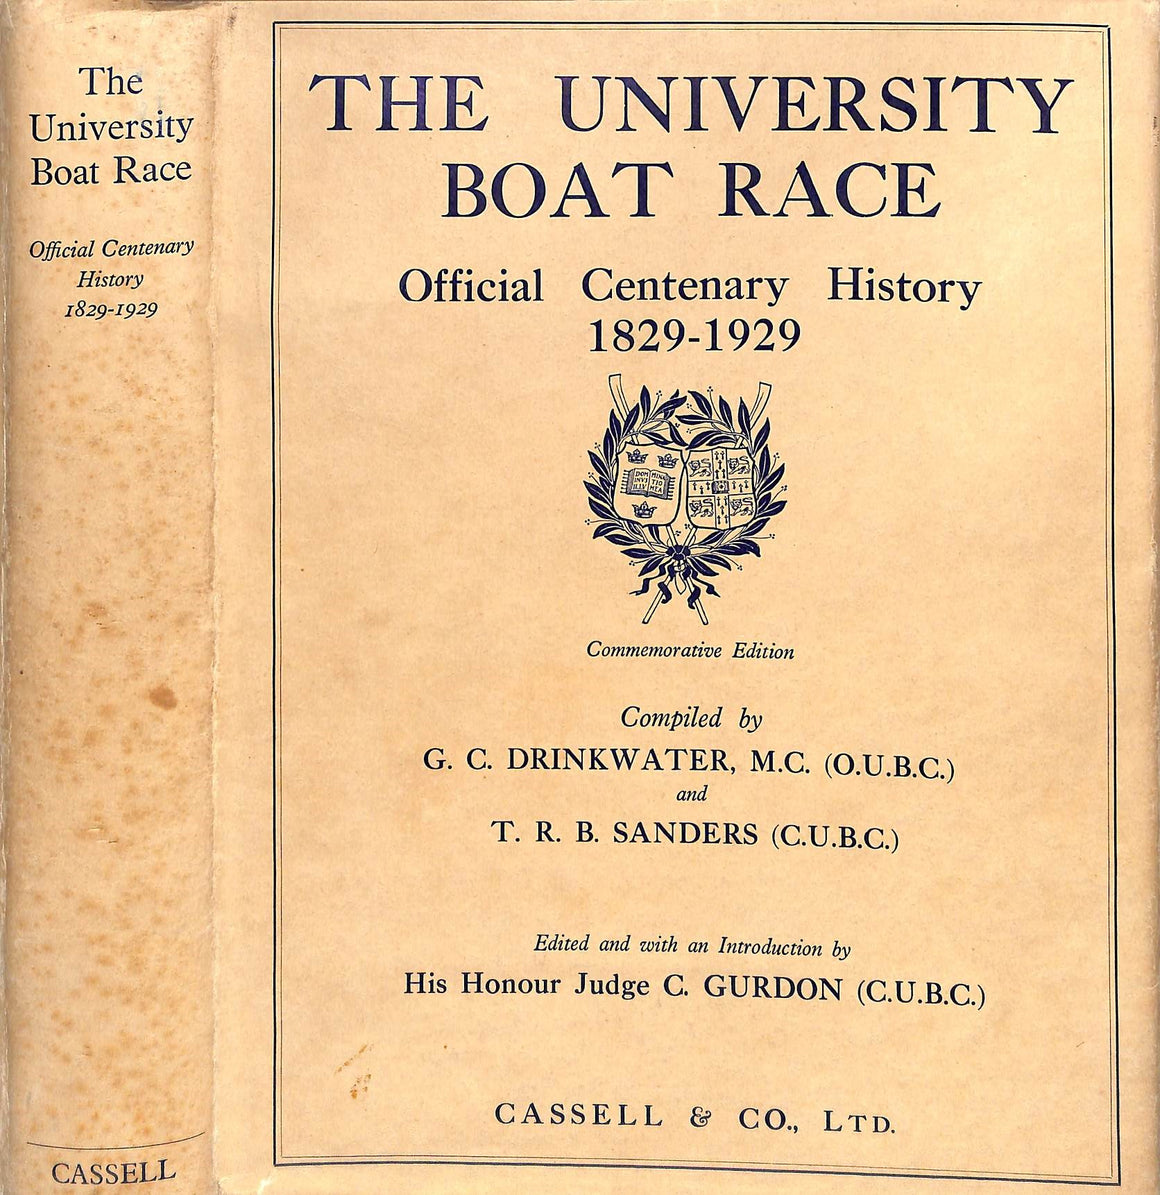 """The University Boat Race: Official Centenary History 1829-1929"" by G. C. Drinkwater, M.C. and T. R. B. Sanders"